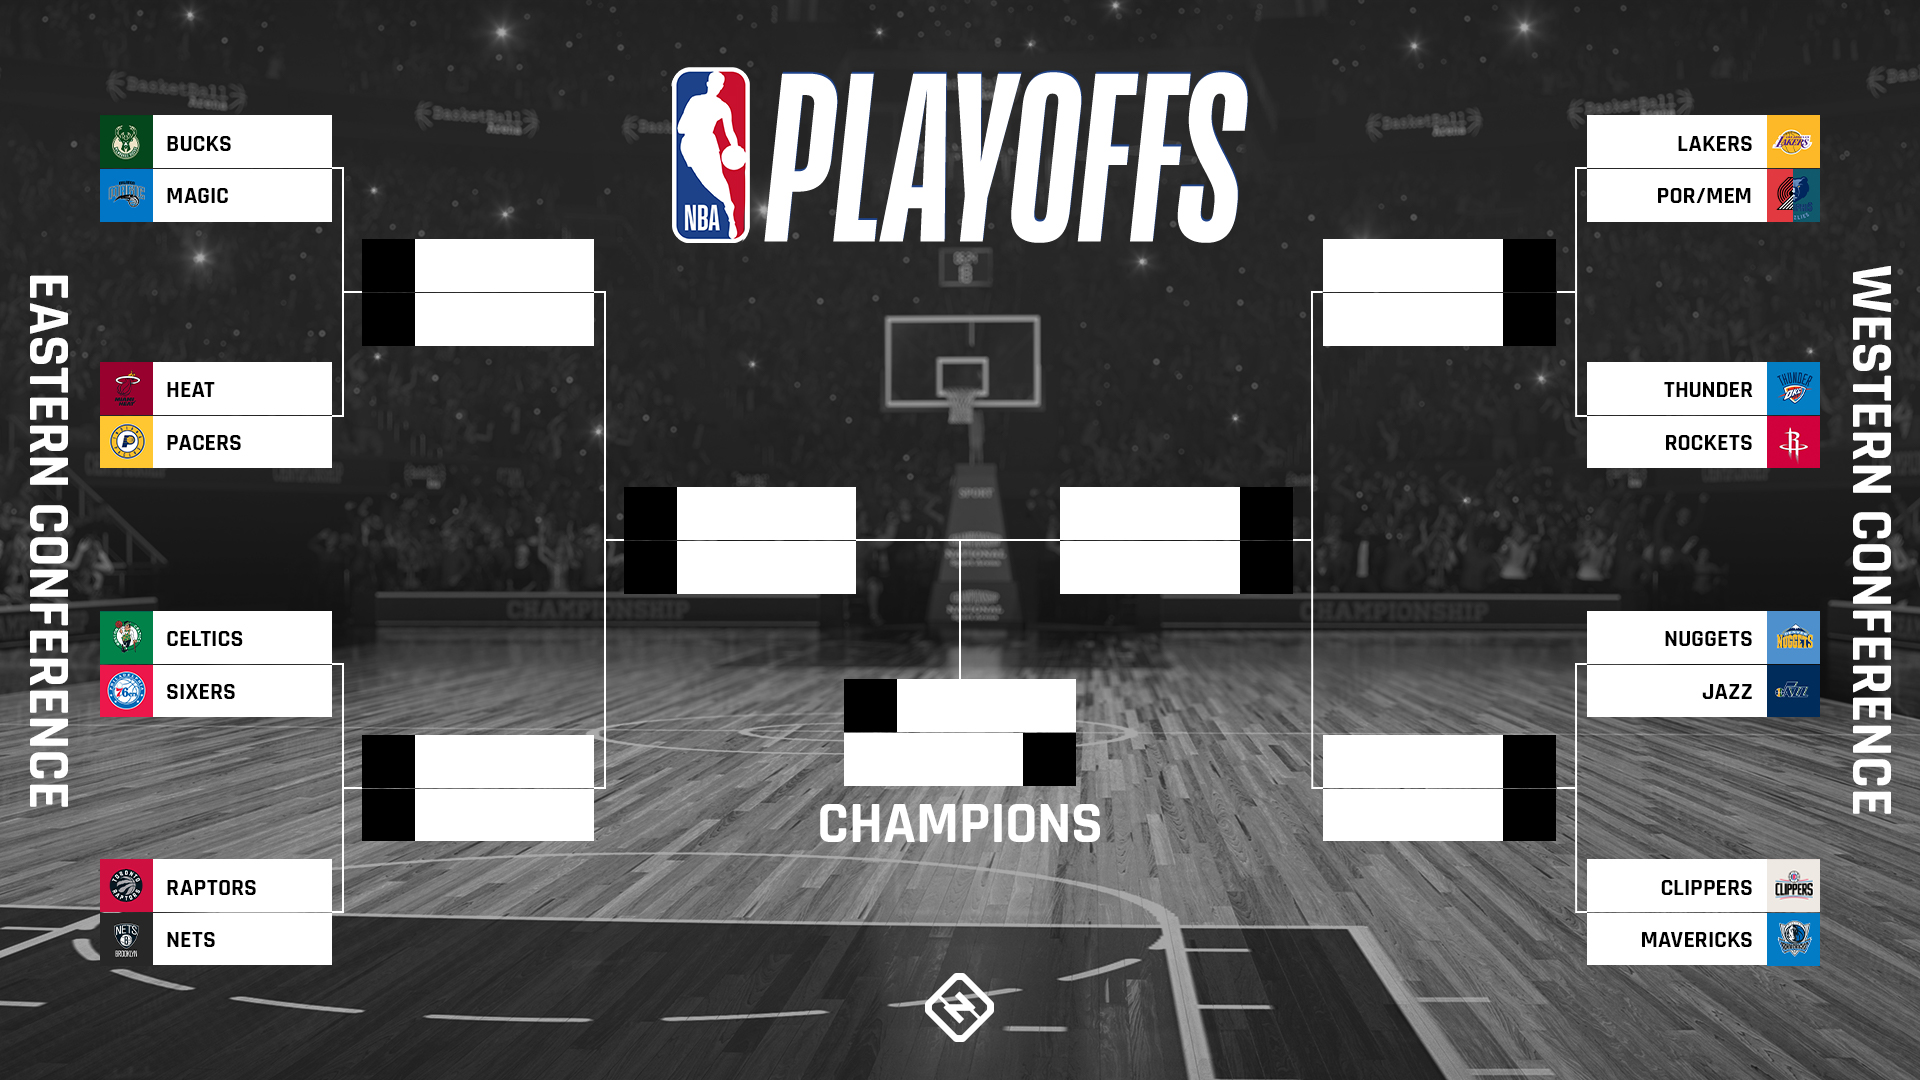 NBA playoff bracket predictions, picks, odds & series breakdowns for the 2020 bubble